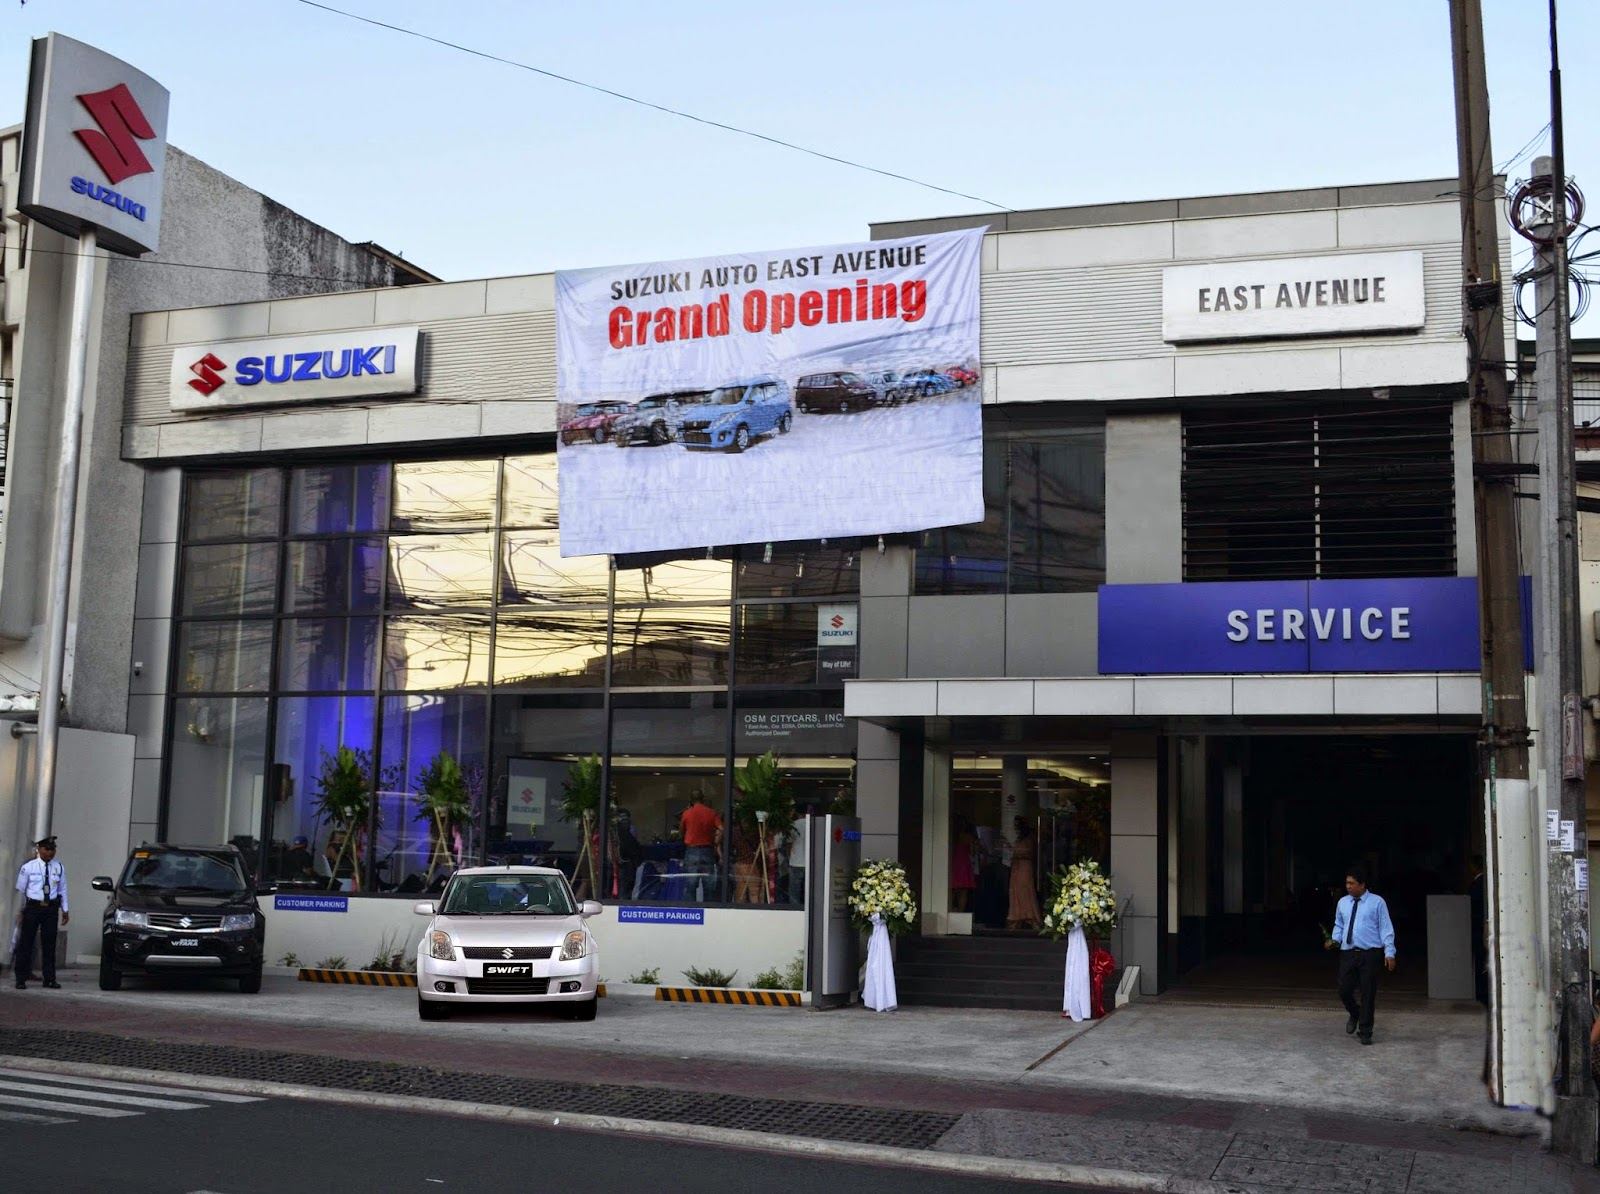 Suzuki Auto East Avenue